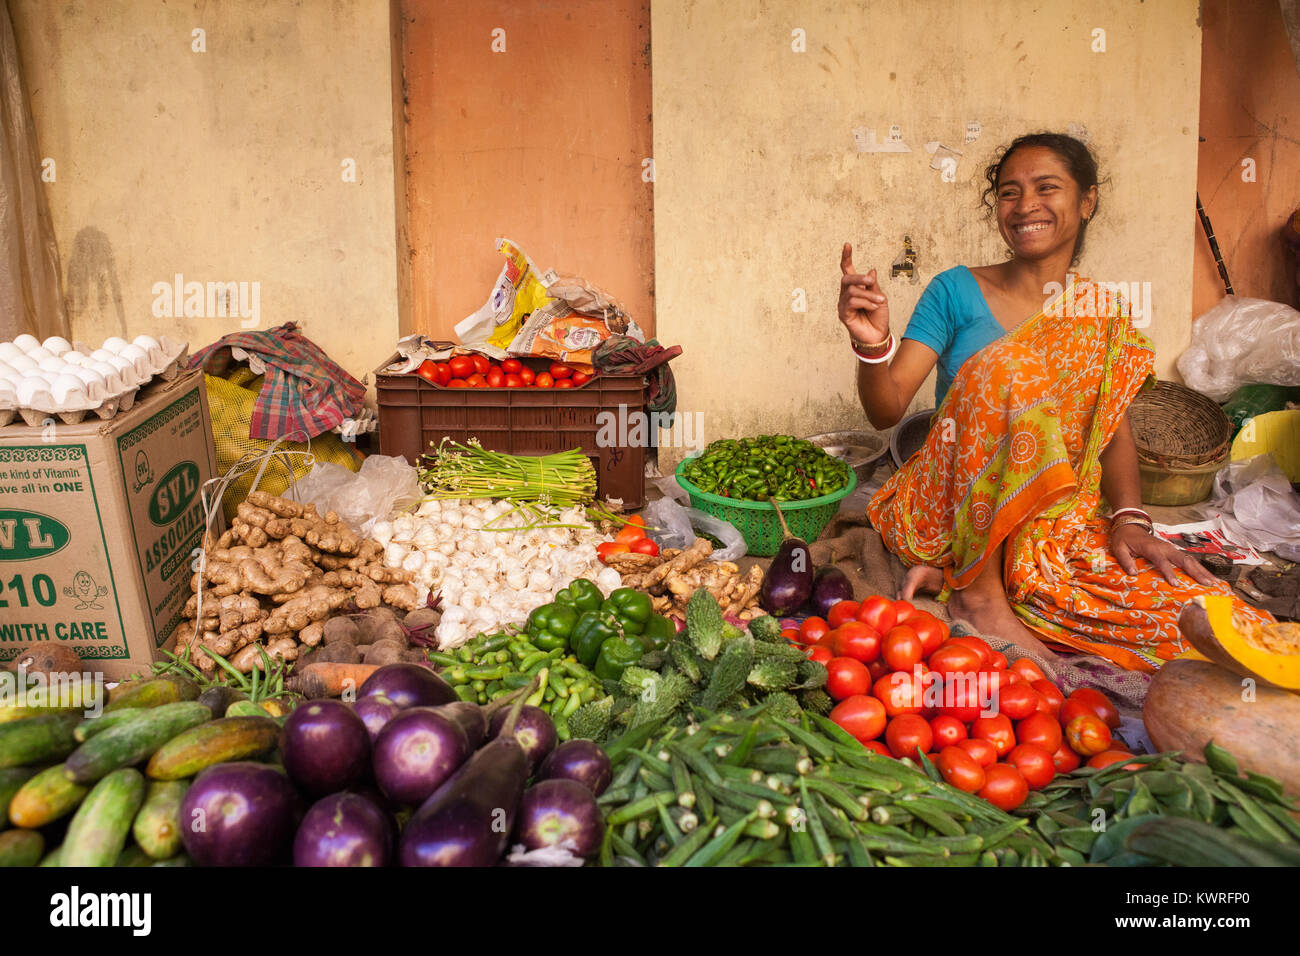 Vegetable seller at the market in the Garia district of Kolkata, India - Stock Image